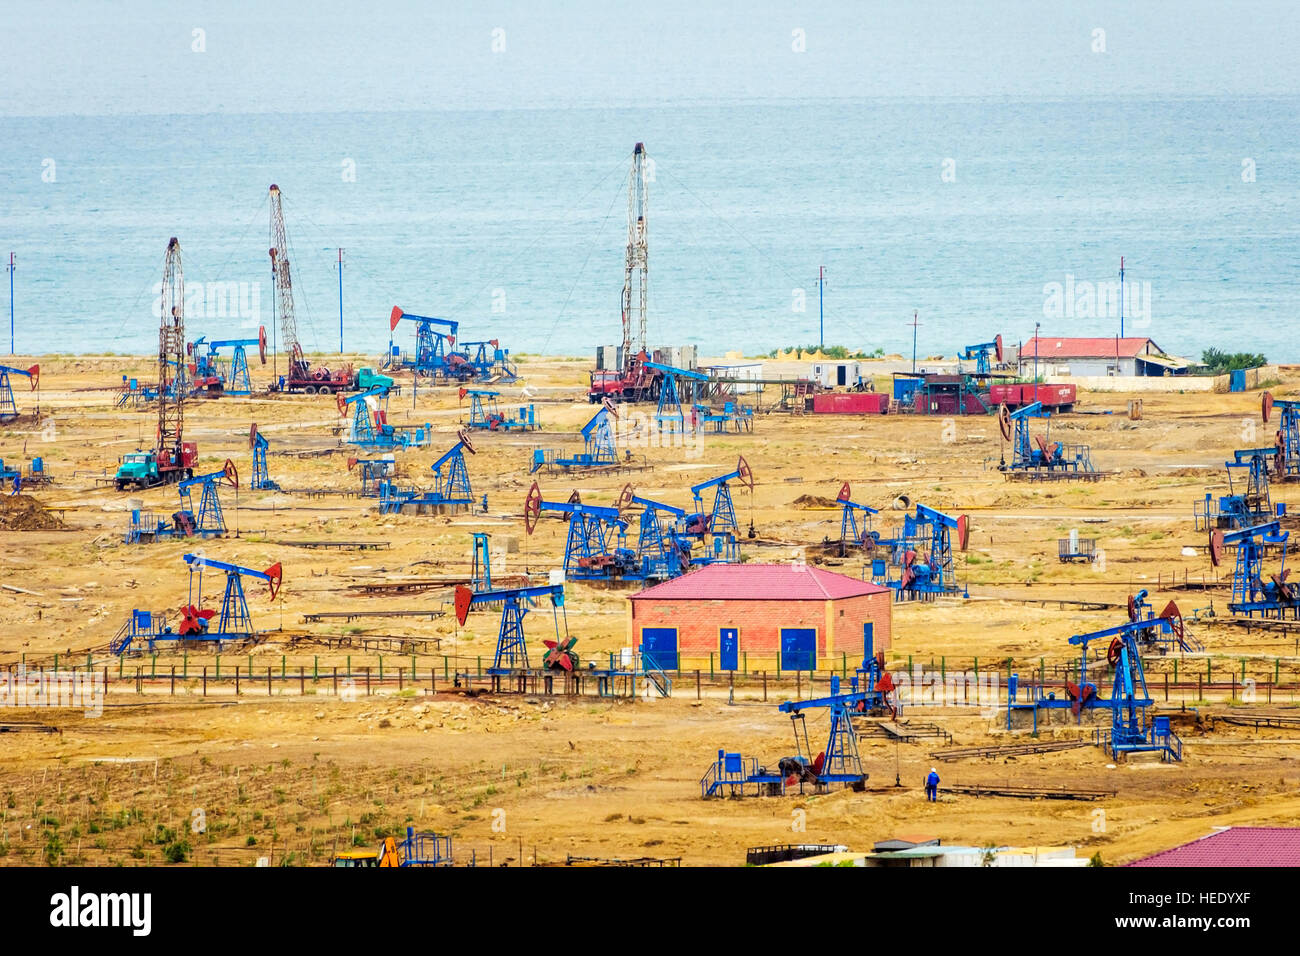 Oil pumps and rigs at the field by Caspian sea near Baku, Azerbaijan - Stock Image